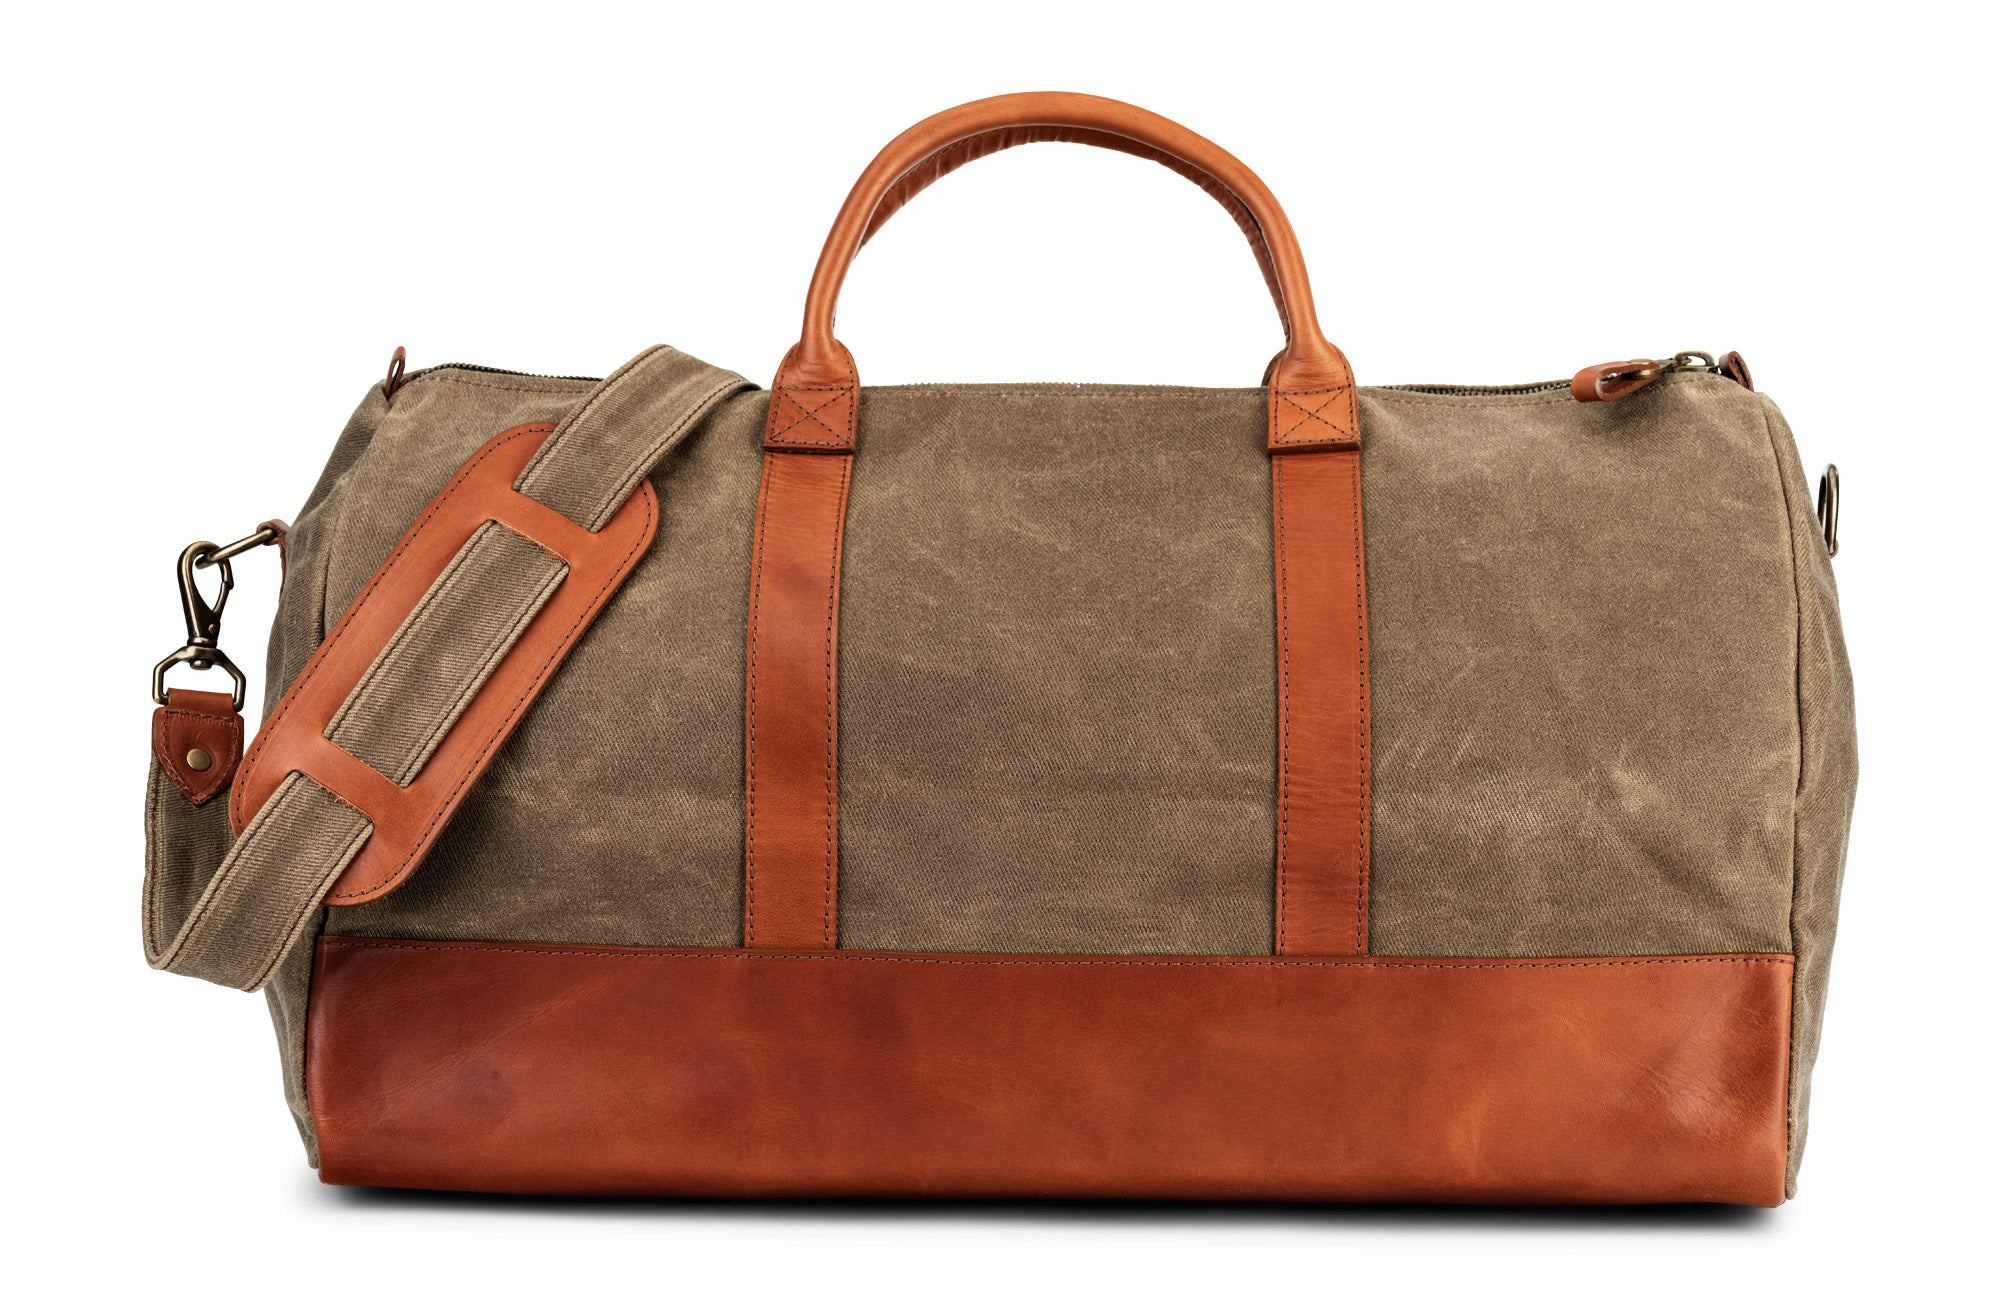 809503b2e0 jackson wayne leather waxed canvas twill weave weekender travel duffle bag  in saddle tan made in ...